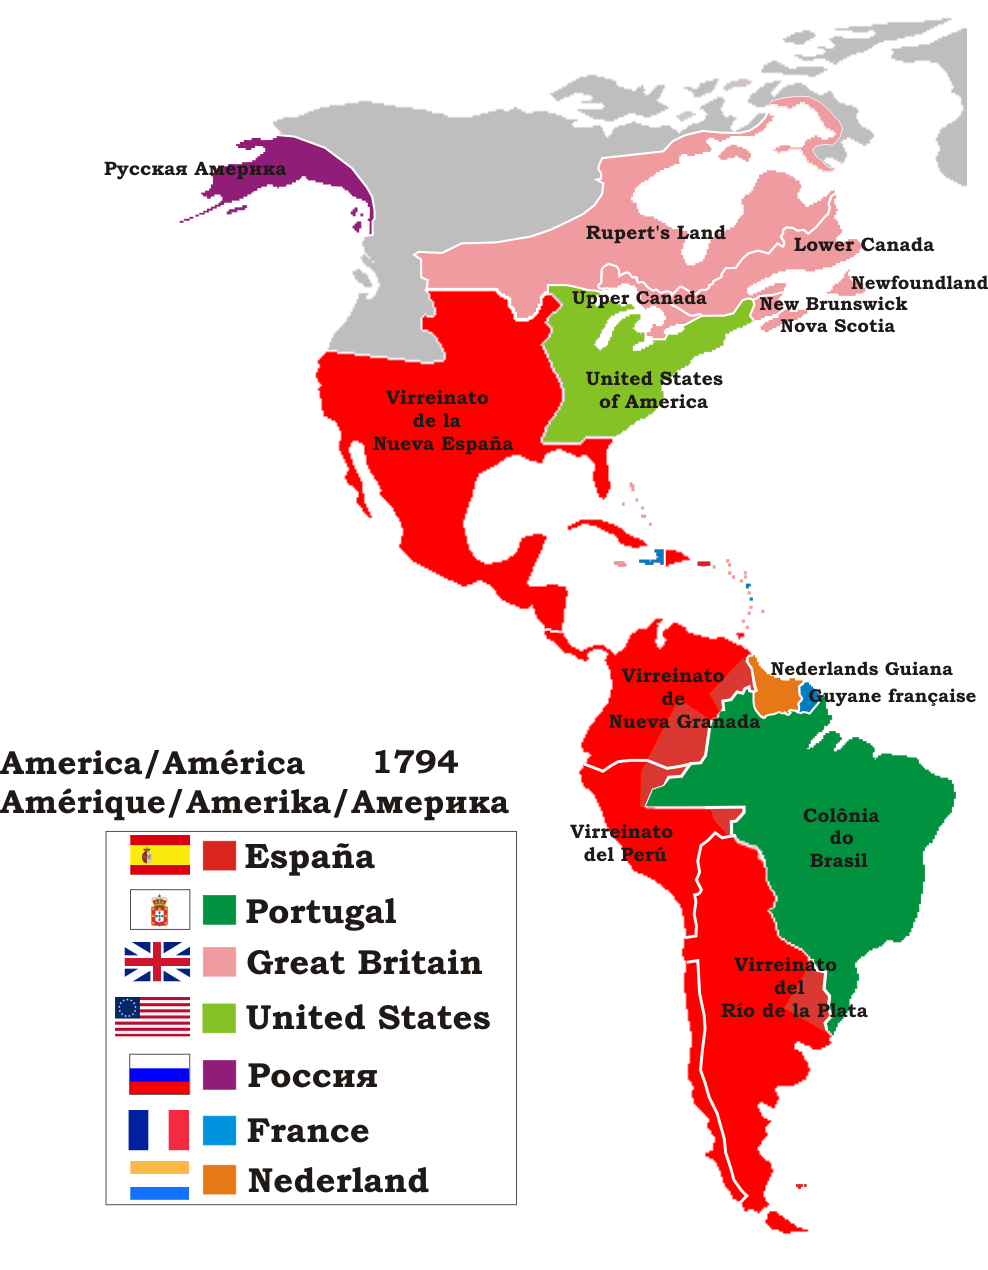 Politic map of America in 1794